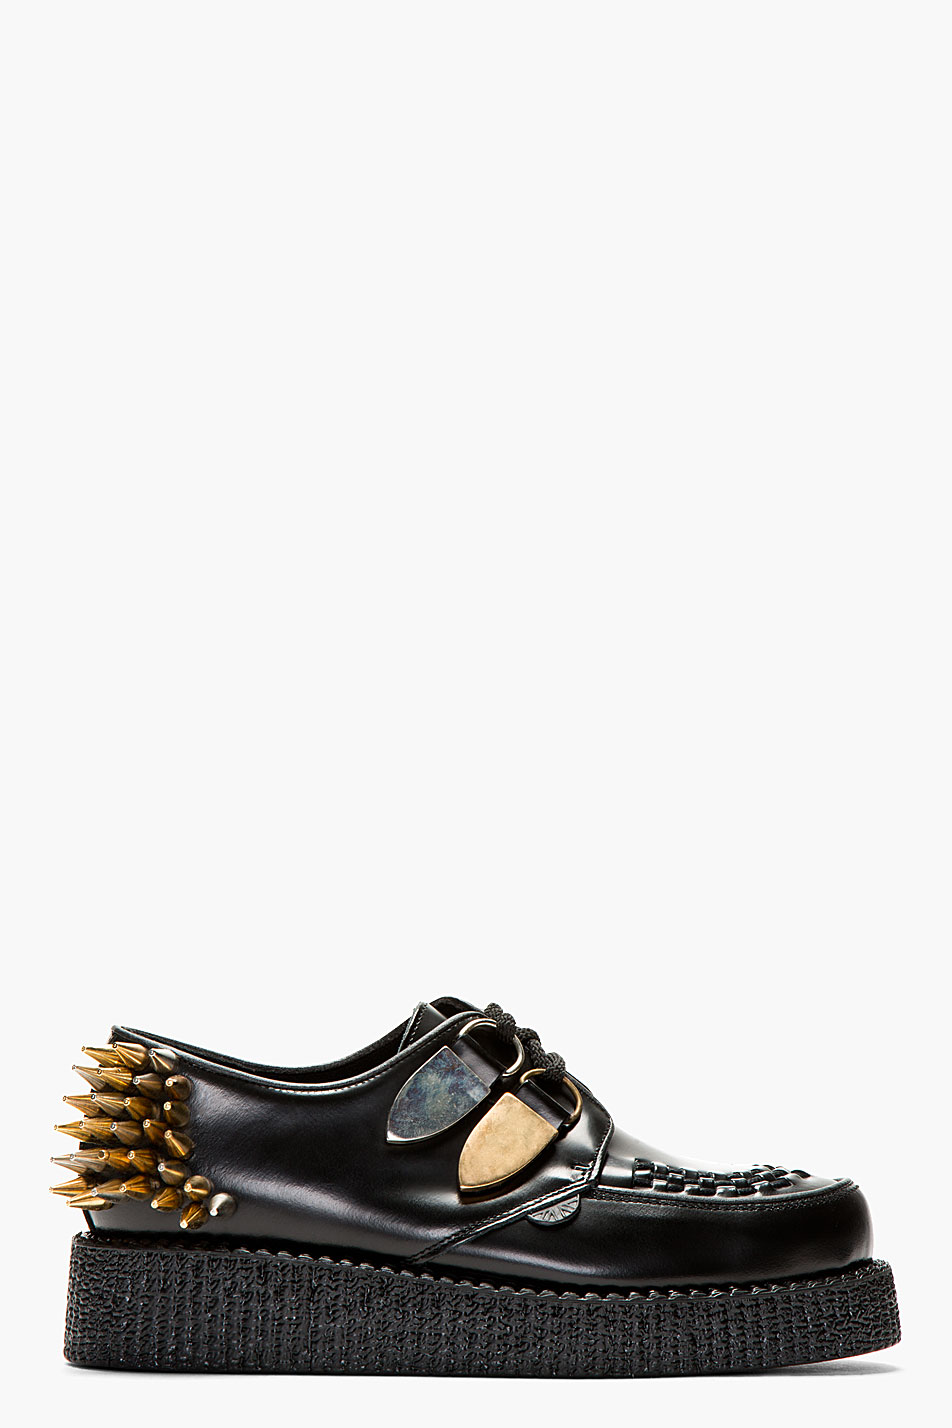 underground ssense exclusive black leather spiked creepers